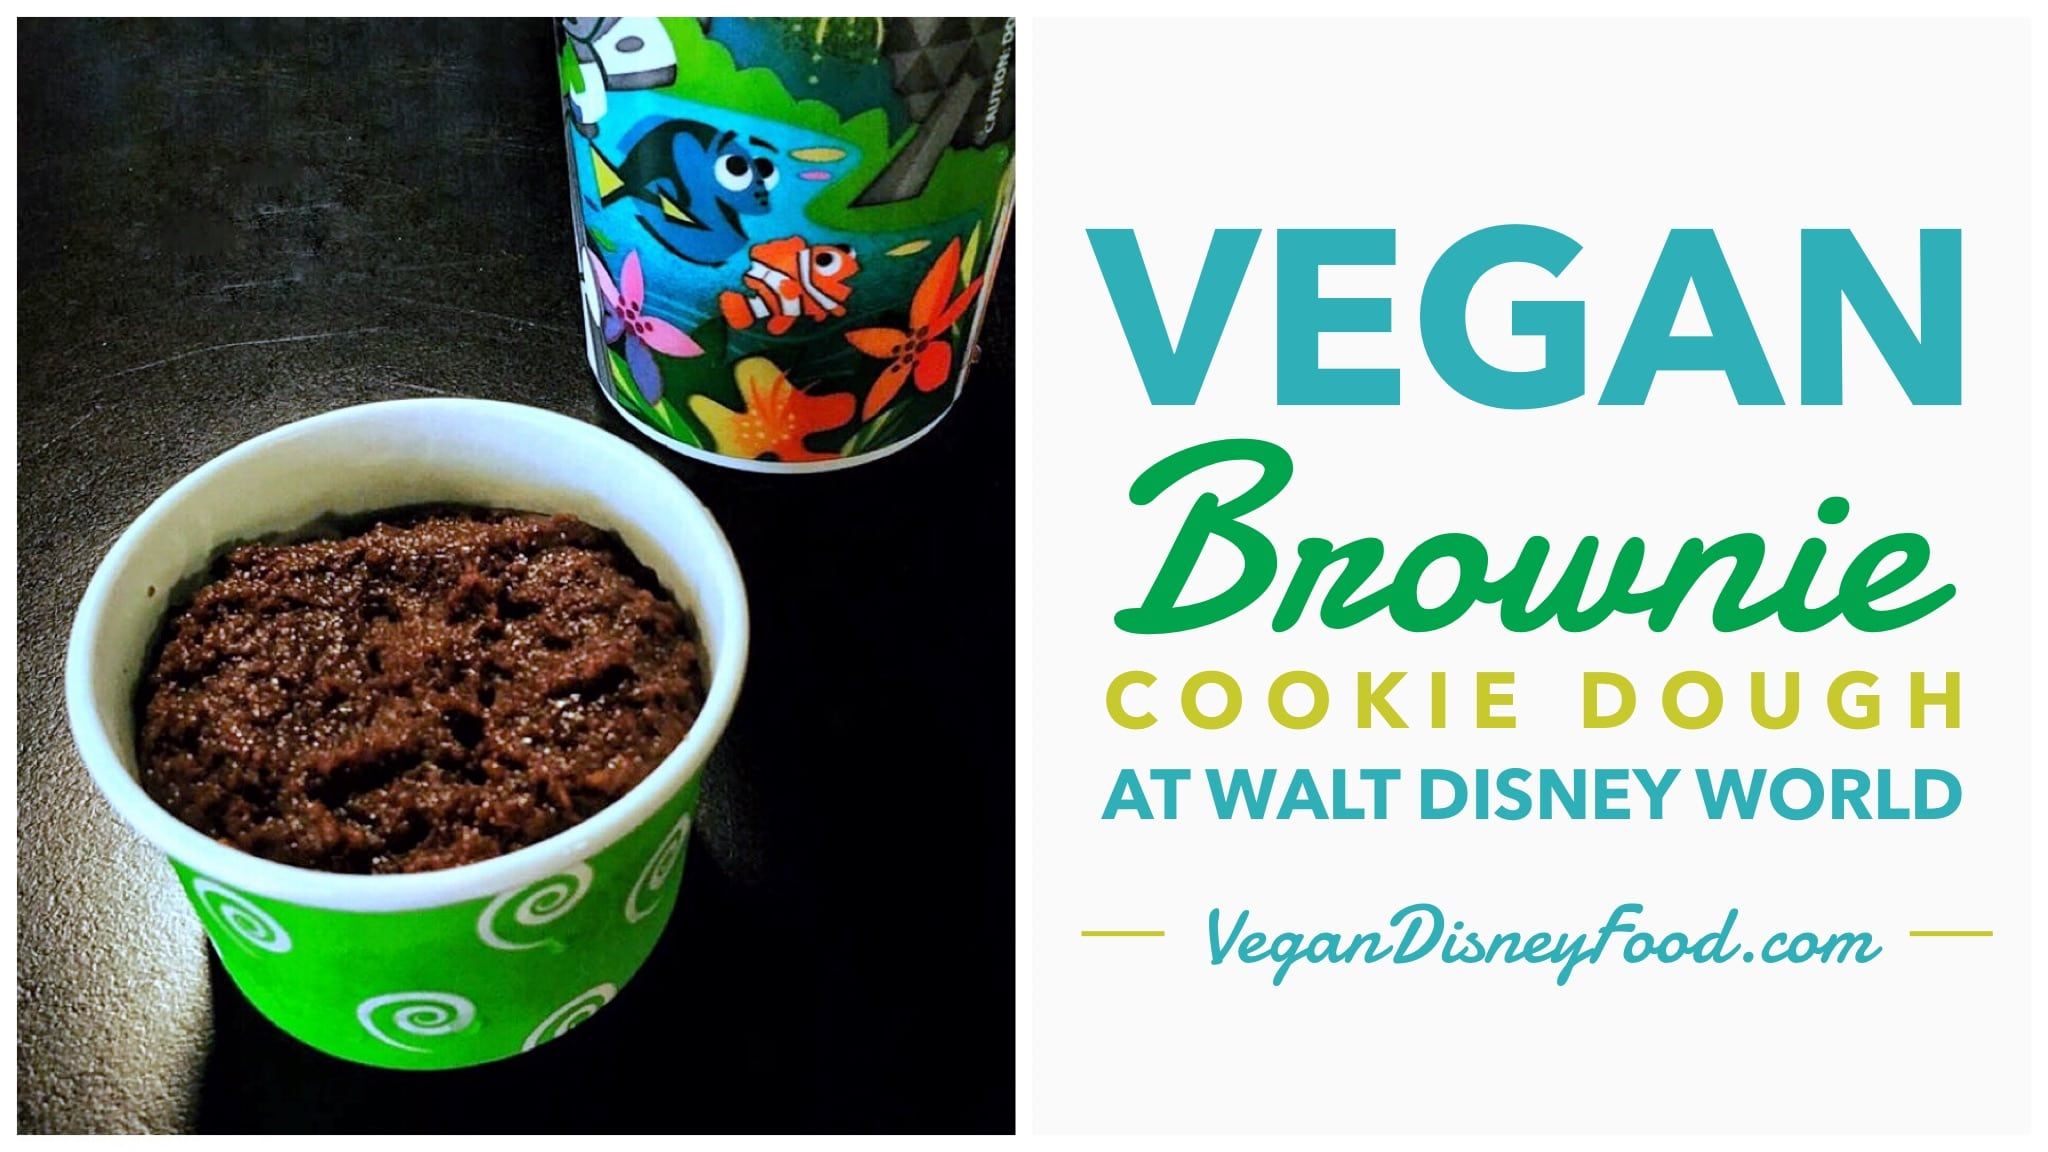 Vegan Brownie Cookie Dough at All Star Sports in Walt Disney World